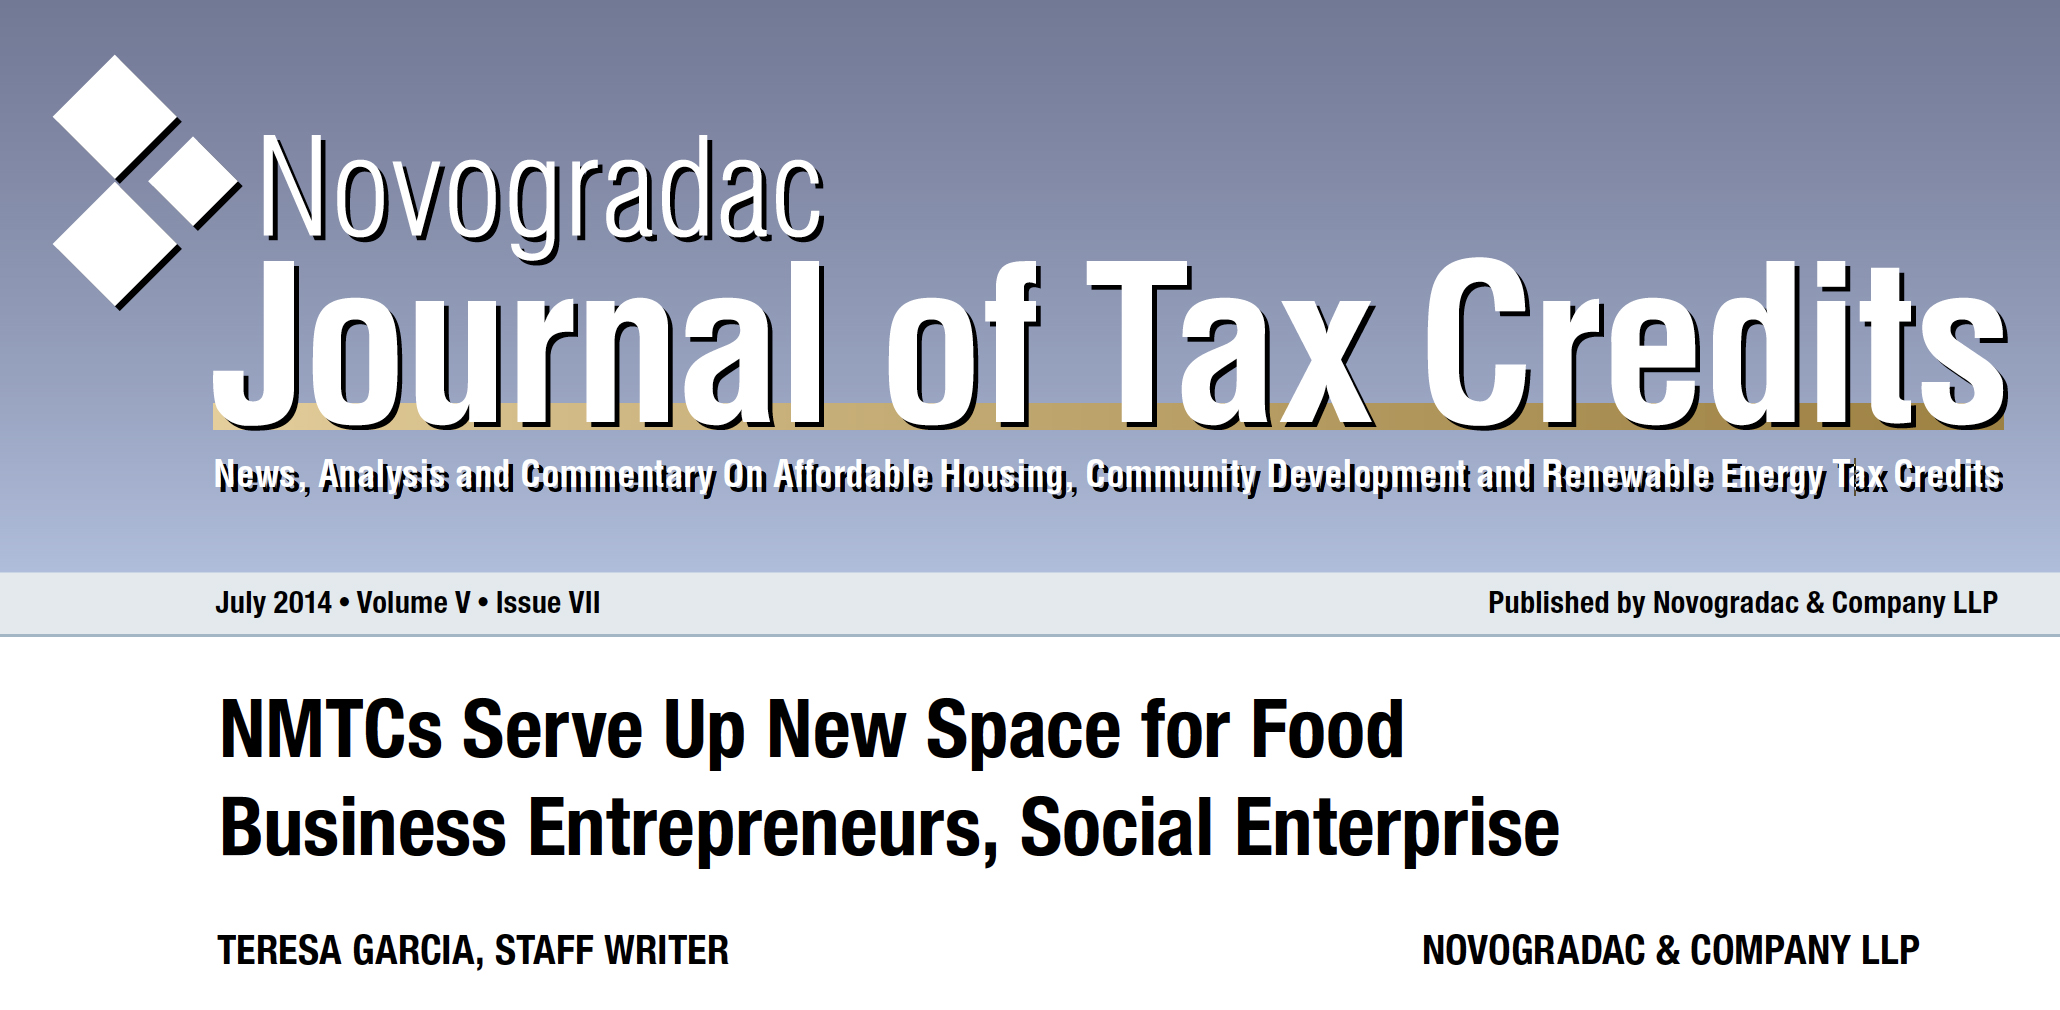 Novogradac_Journal_of_Tax Credits_Volume_5 Issue_7 copy.jpg